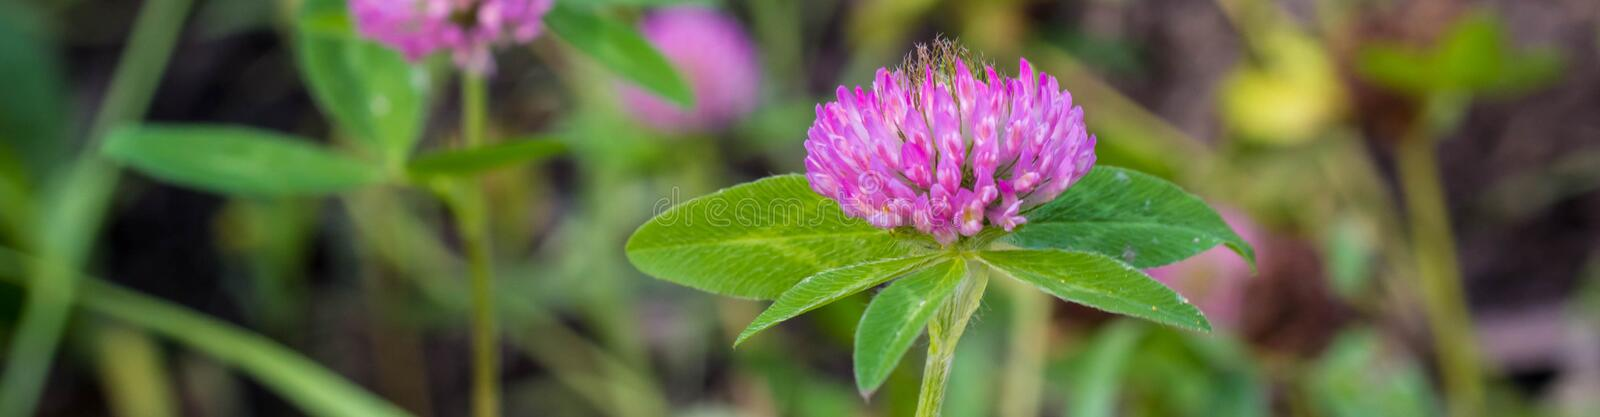 Banner of flower of a pink clover grows in the field with a green grass. Nature, plant, flora, leaf, herb, herbal, purple, red, petal, summer, blossom, natural royalty free stock photo